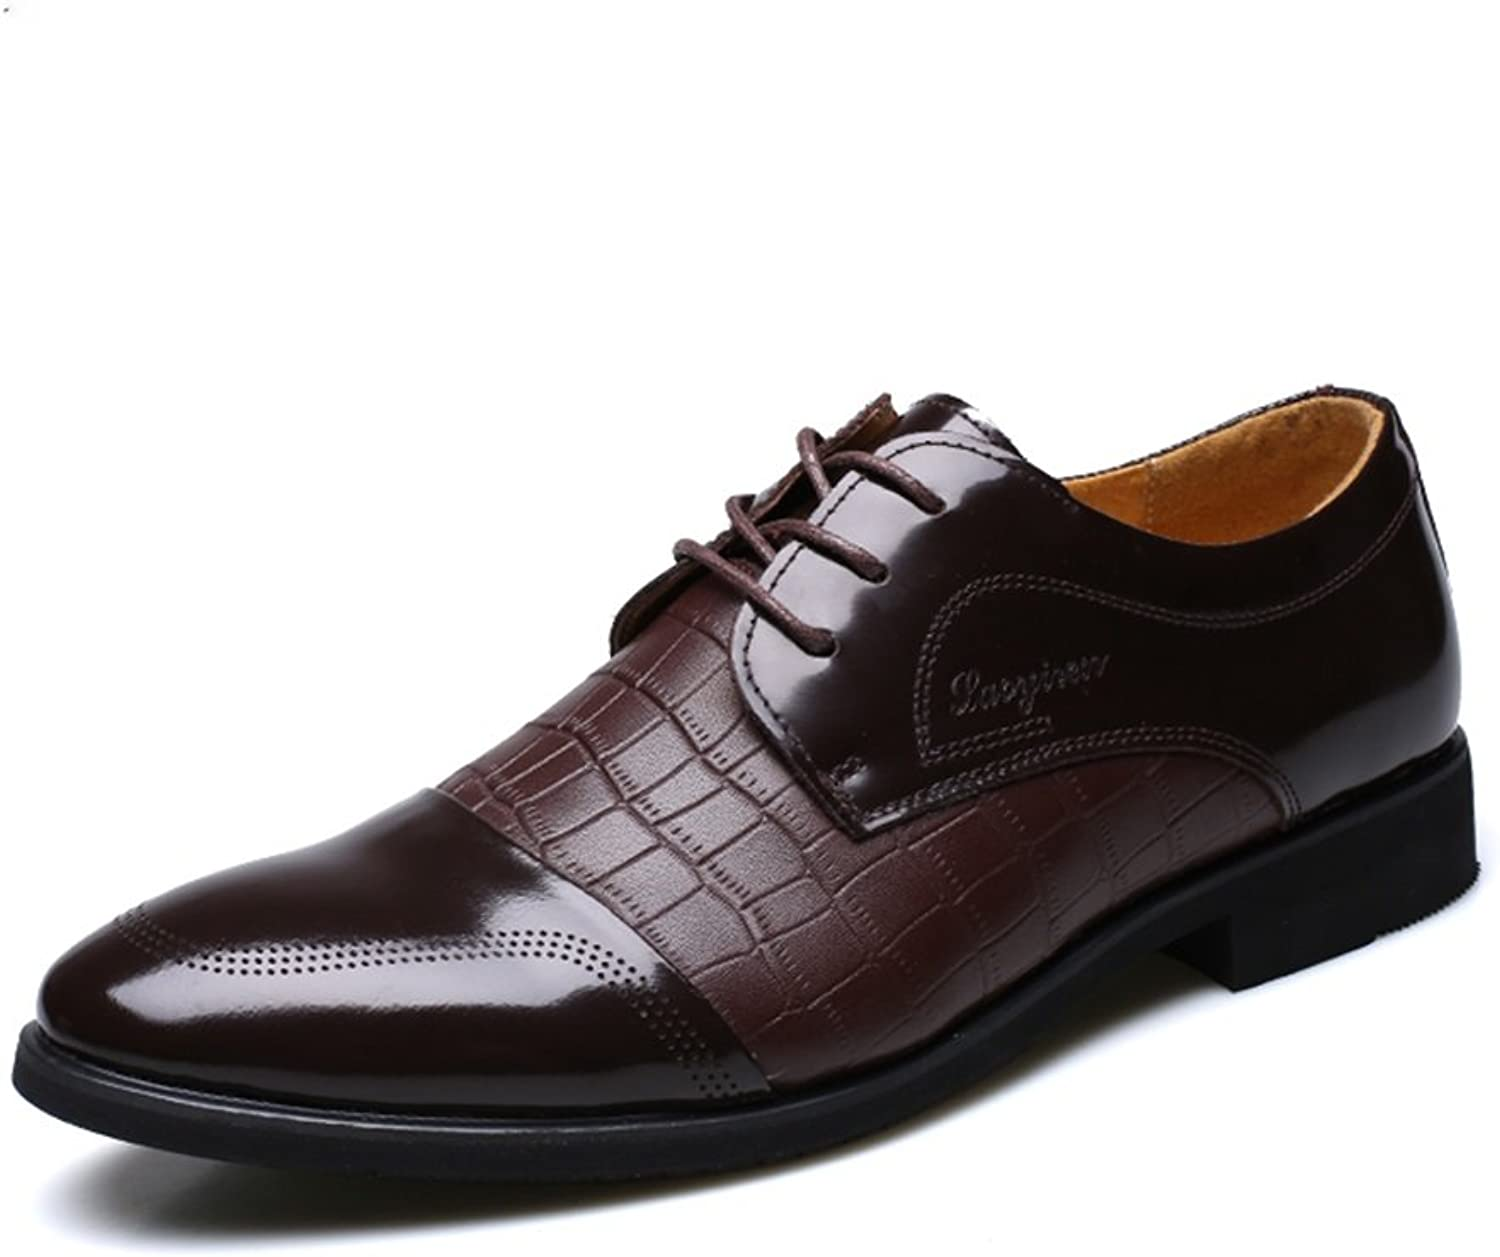 Men's Genuine Leather Formal Modern Classic Handcrafted Crocodile Embossed Calfskin Lace Up Leather Lined Oxford Dress shoes ( color   Brown , Size   10 D(M)US )